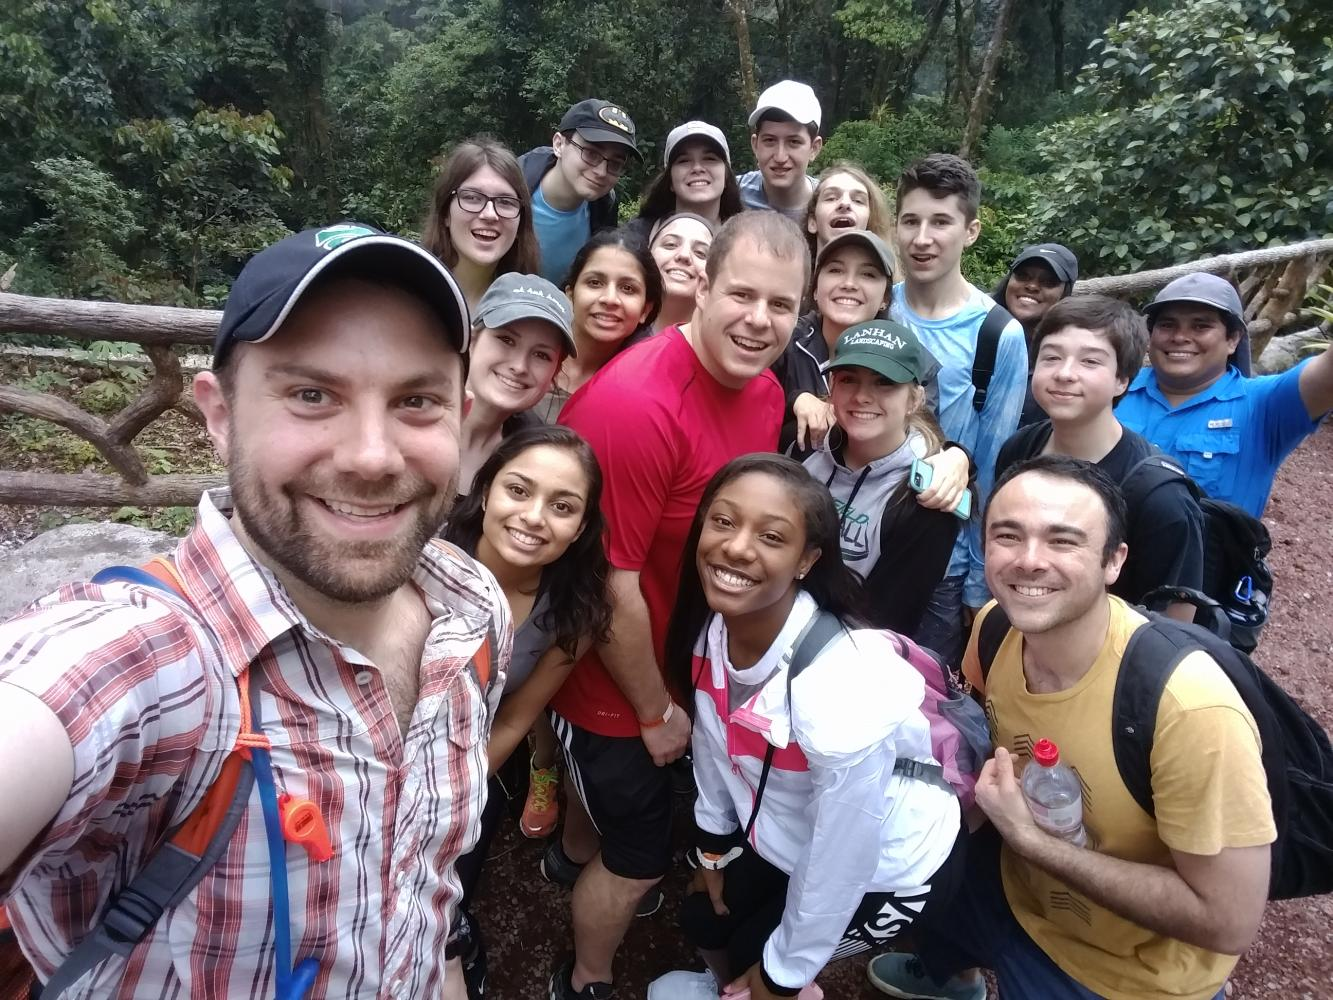 The spring break trip to Costa Rica was chaperoned by Mr. Phil Deaton and Mr. Corey Rice.